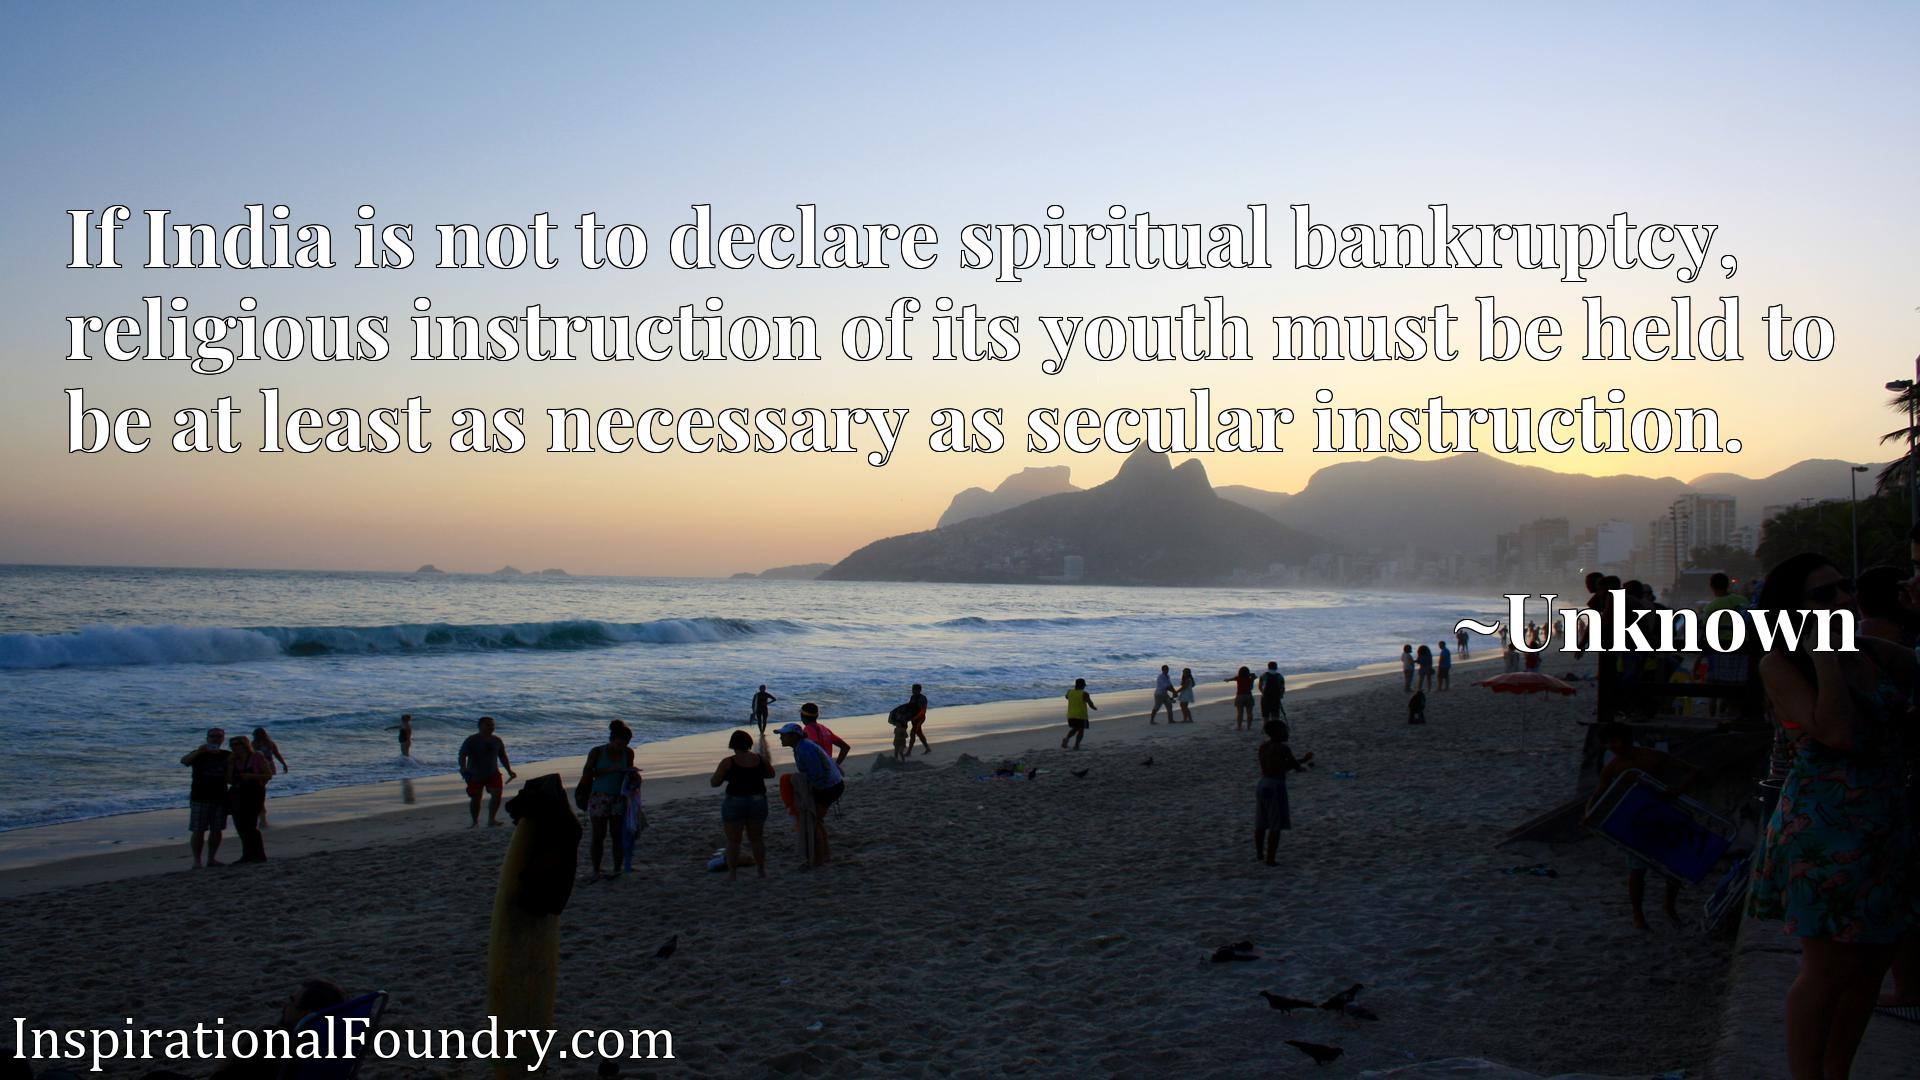 Quote Picture :If India is not to declare spiritual bankruptcy, religious instruction of its youth must be held to be at least as necessary as secular instruction.